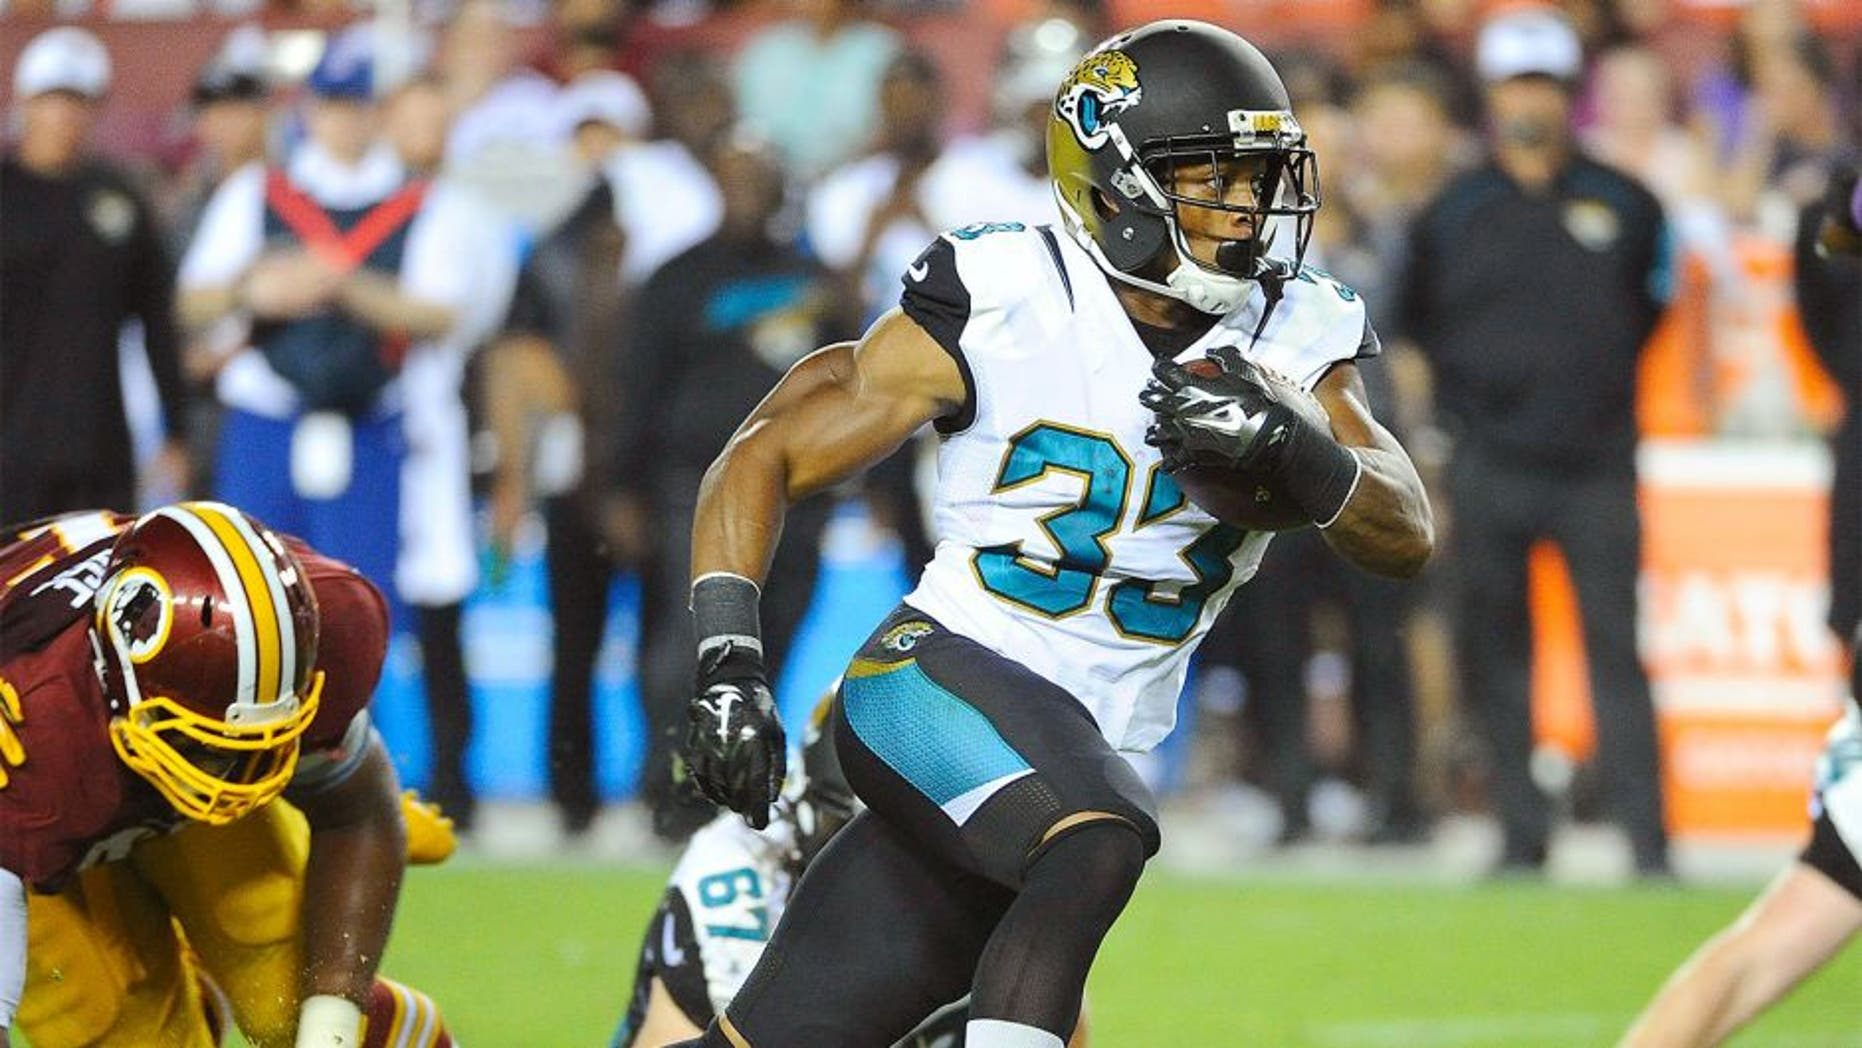 Sep 3, 2015; Landover, MD, USA; Jacksonville Jaguars running back Corey Grant (33) rushes the ball against the Washington Redskins during the second half at FedEx Field. The Jacksonville Jaguars won 17 - 16. Mandatory Credit: Brad Mills-USA TODAY Sports